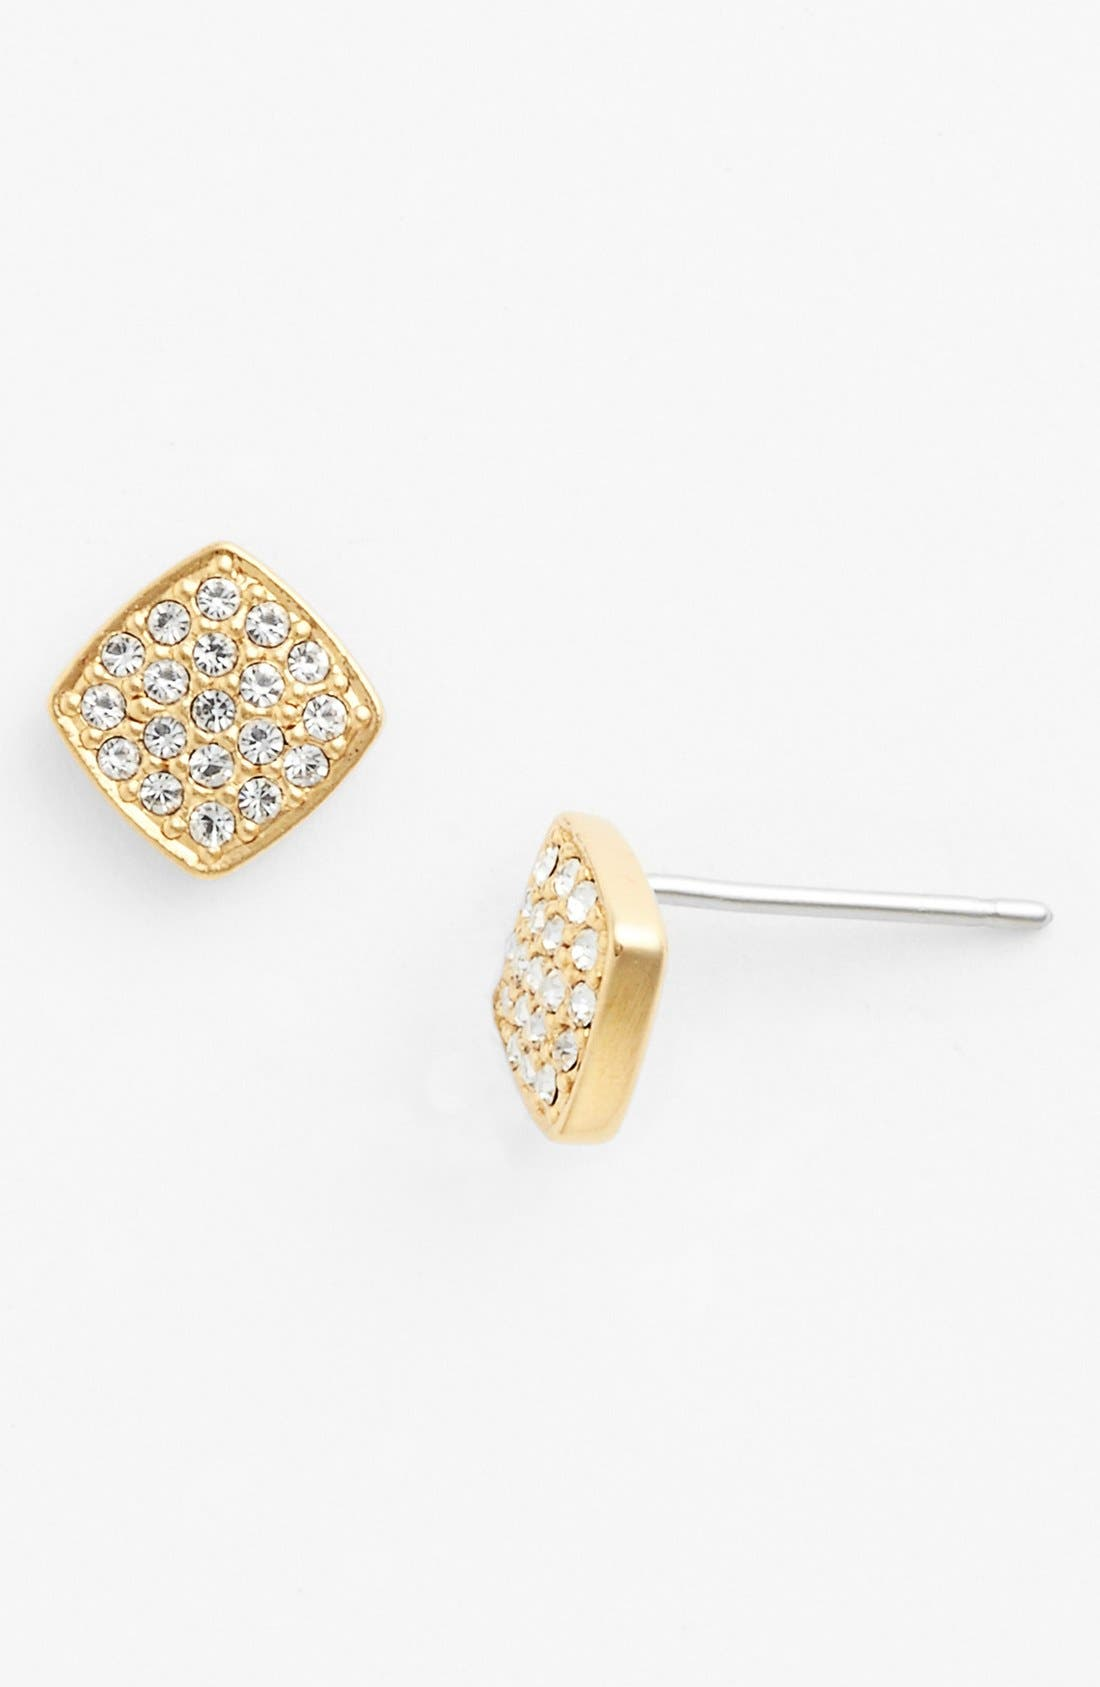 Main Image - Nadri Stud Earrings